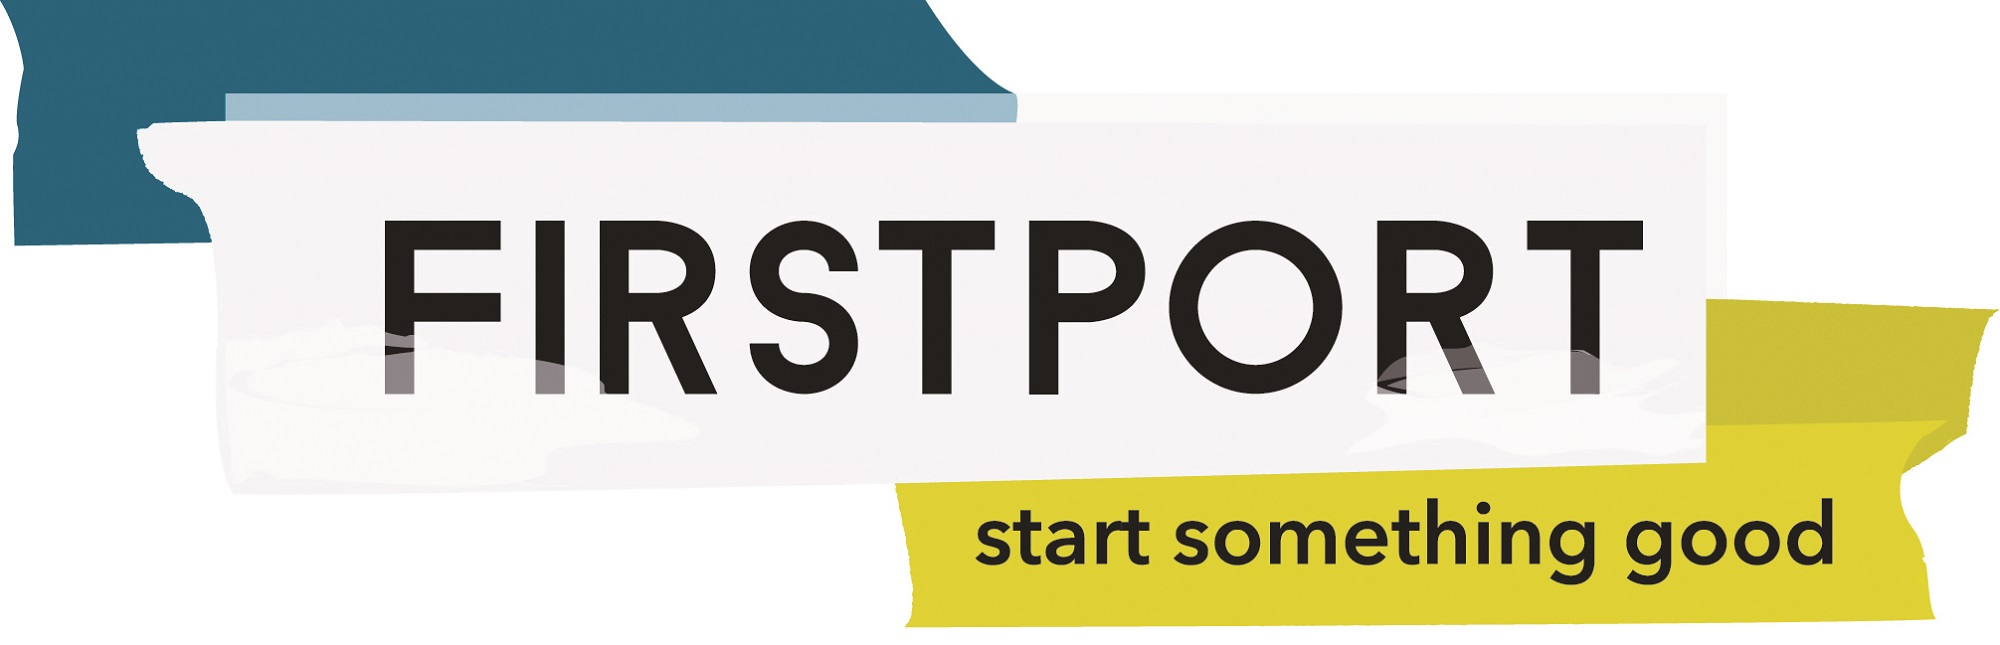 Firstport logo